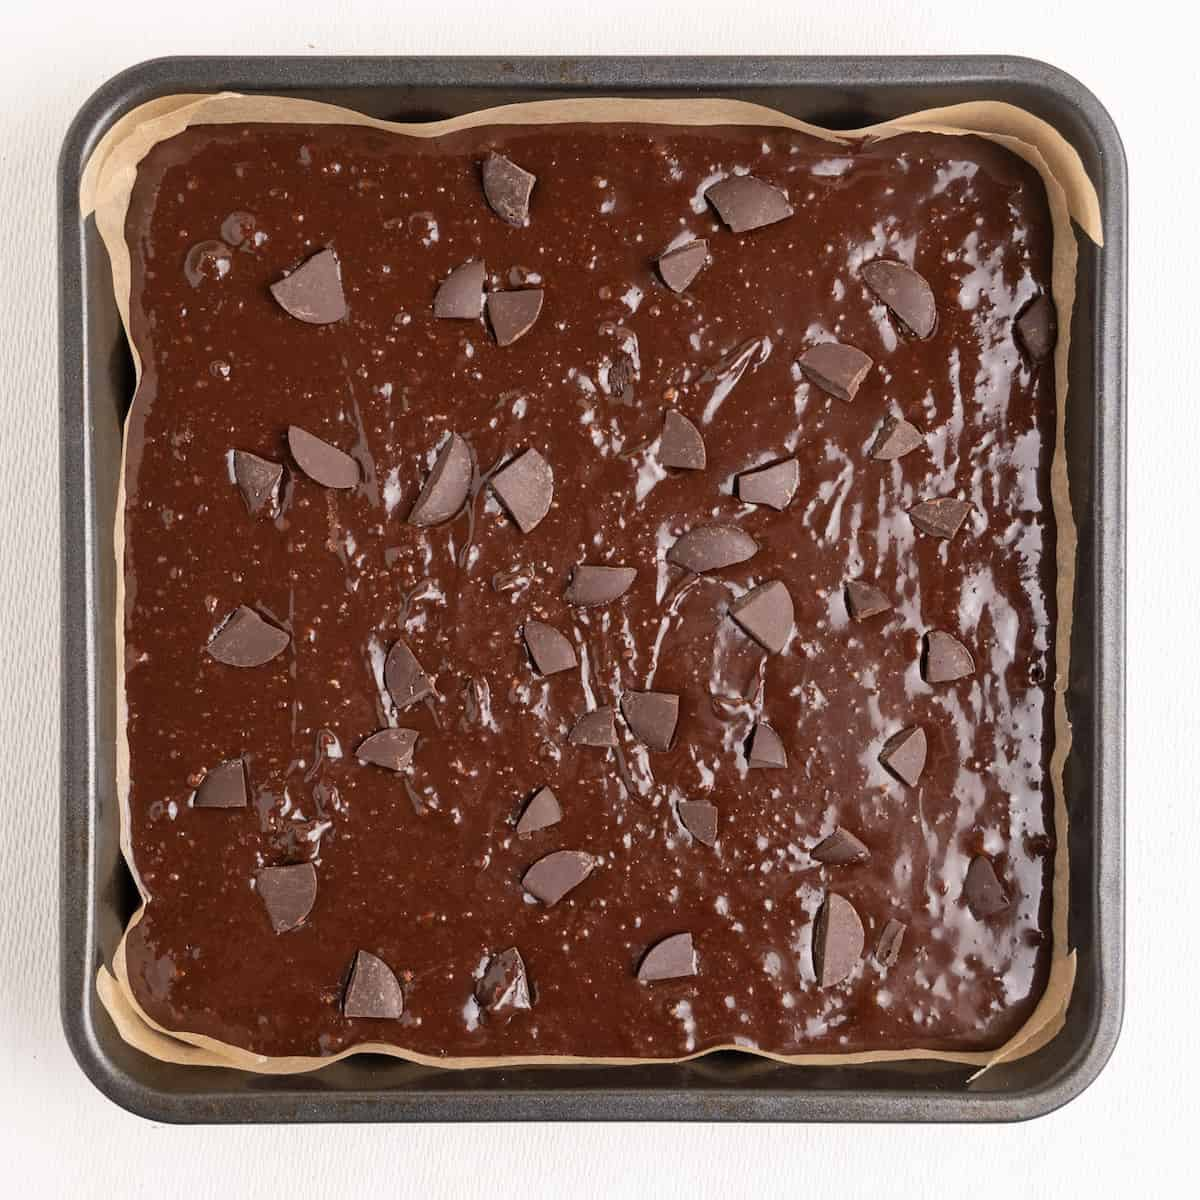 A square pan lined with baking paper containing unbaked brownie.